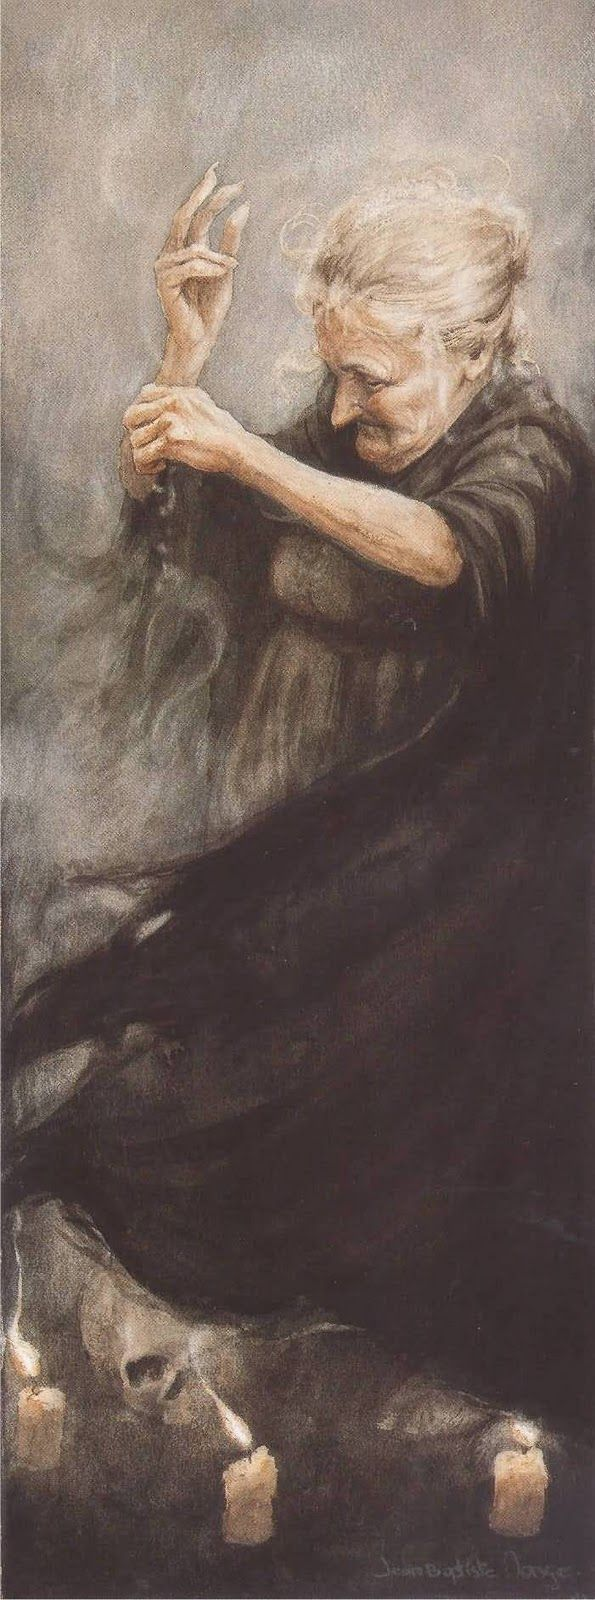 Enter the Bruja, the Old Witch. Growing up in New Mexico, I heard many tales of the power of the Bruja. Vale do Mago: Dia das Bruxas